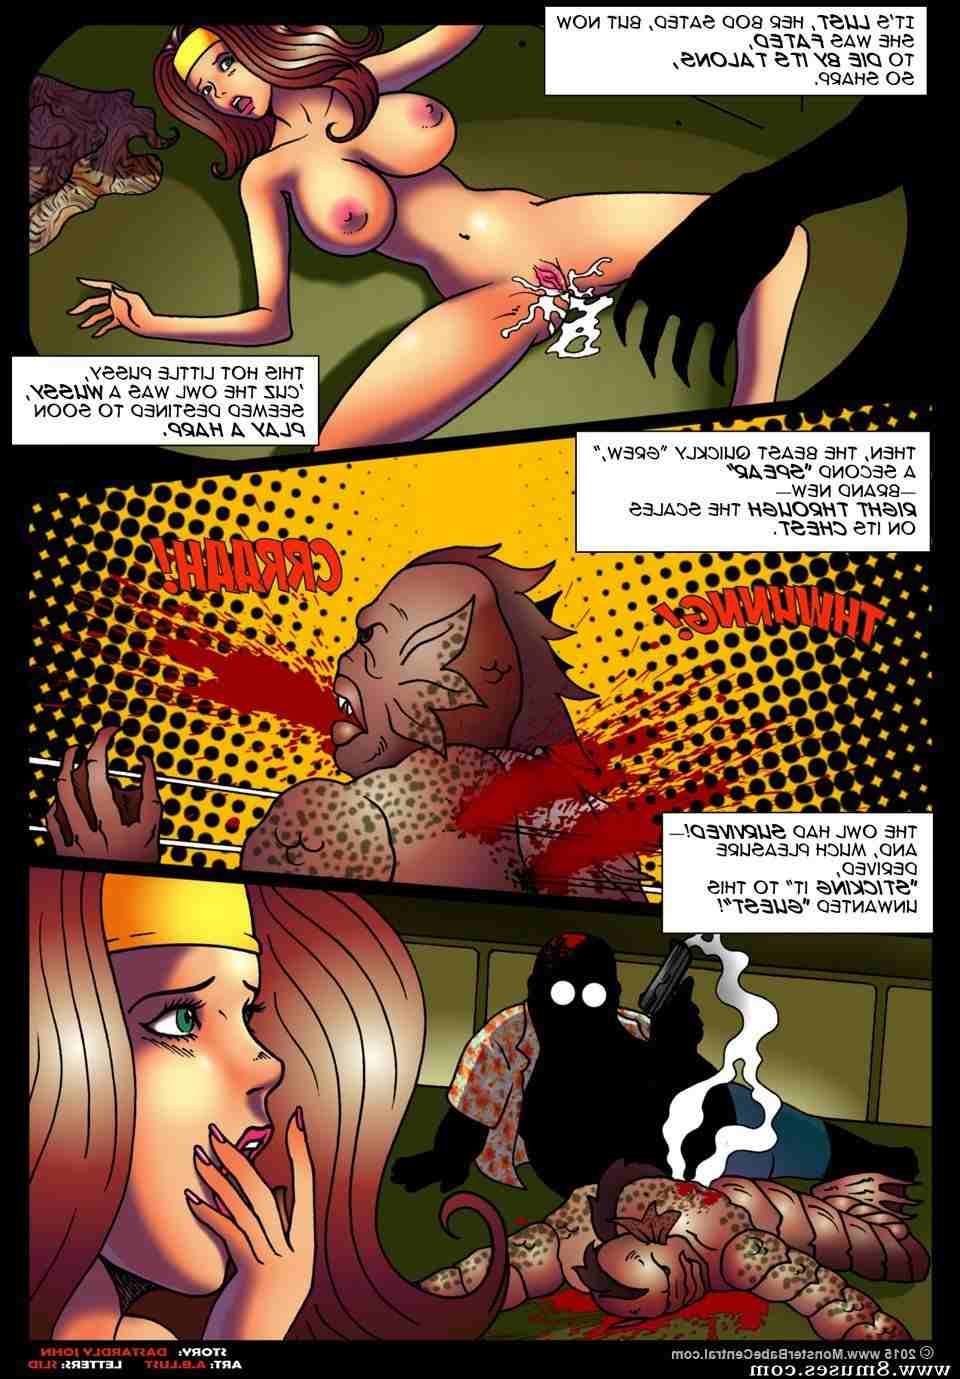 Central-Comics/Horror-Babe-Central/Fable-of-Fright Fable_of_Fright__8muses_-_Sex_and_Porn_Comics_301.jpg